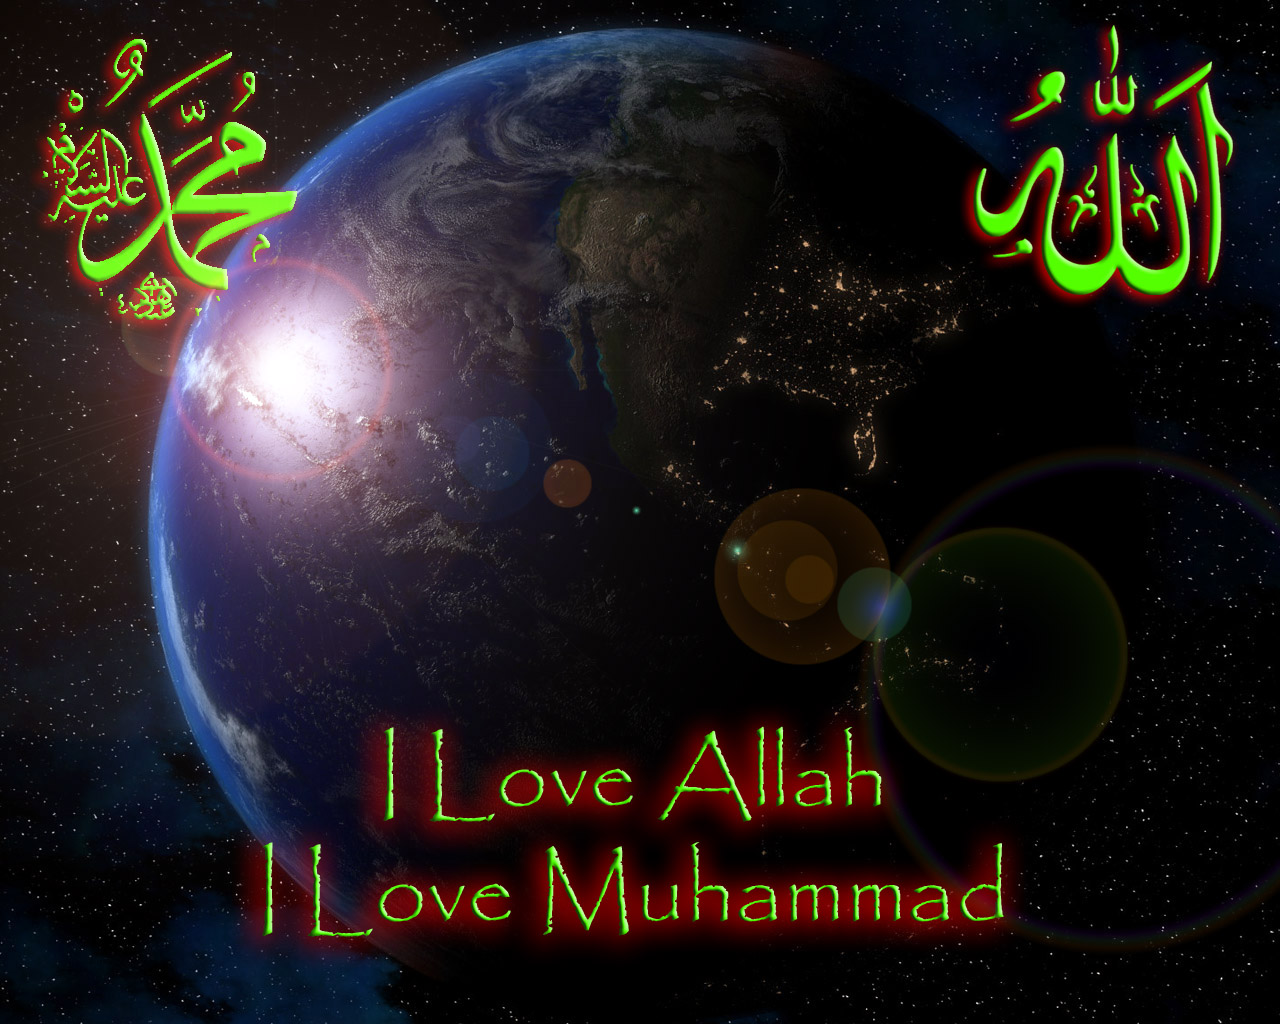 I Love Allah and Muhammad in Arabic